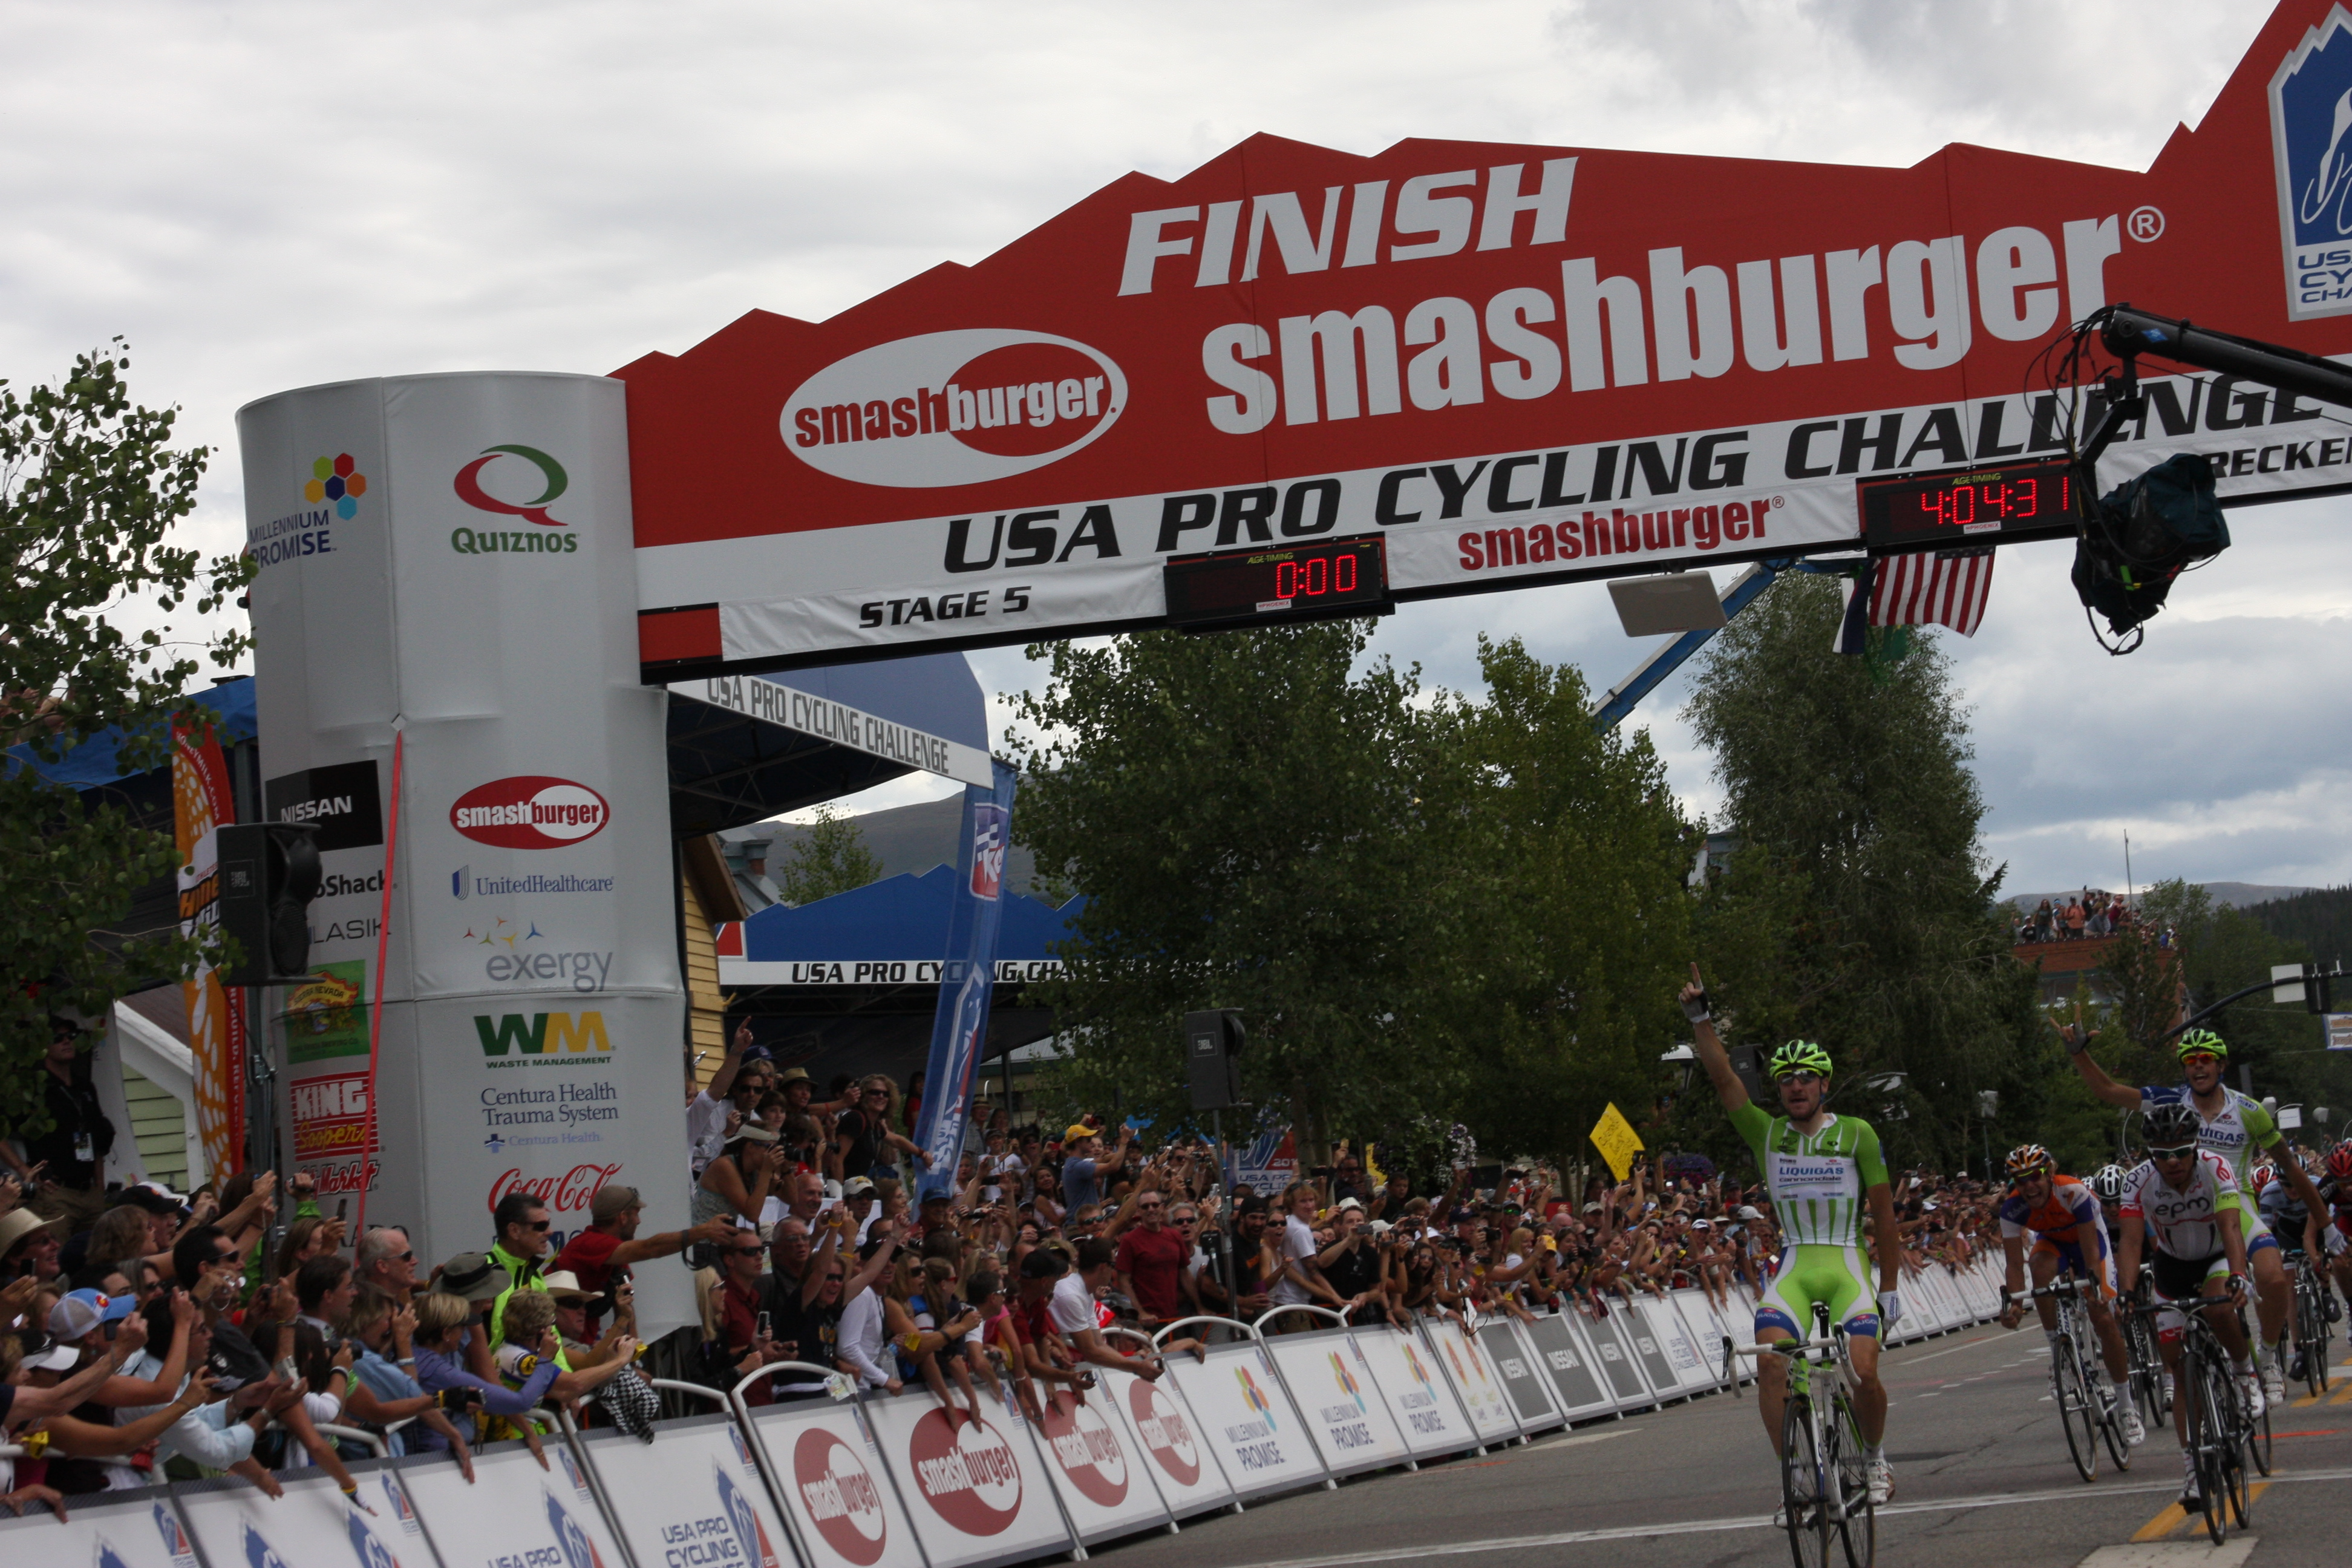 USA Pro Cycling Challenge Stage 5 Finish – Breckenridge